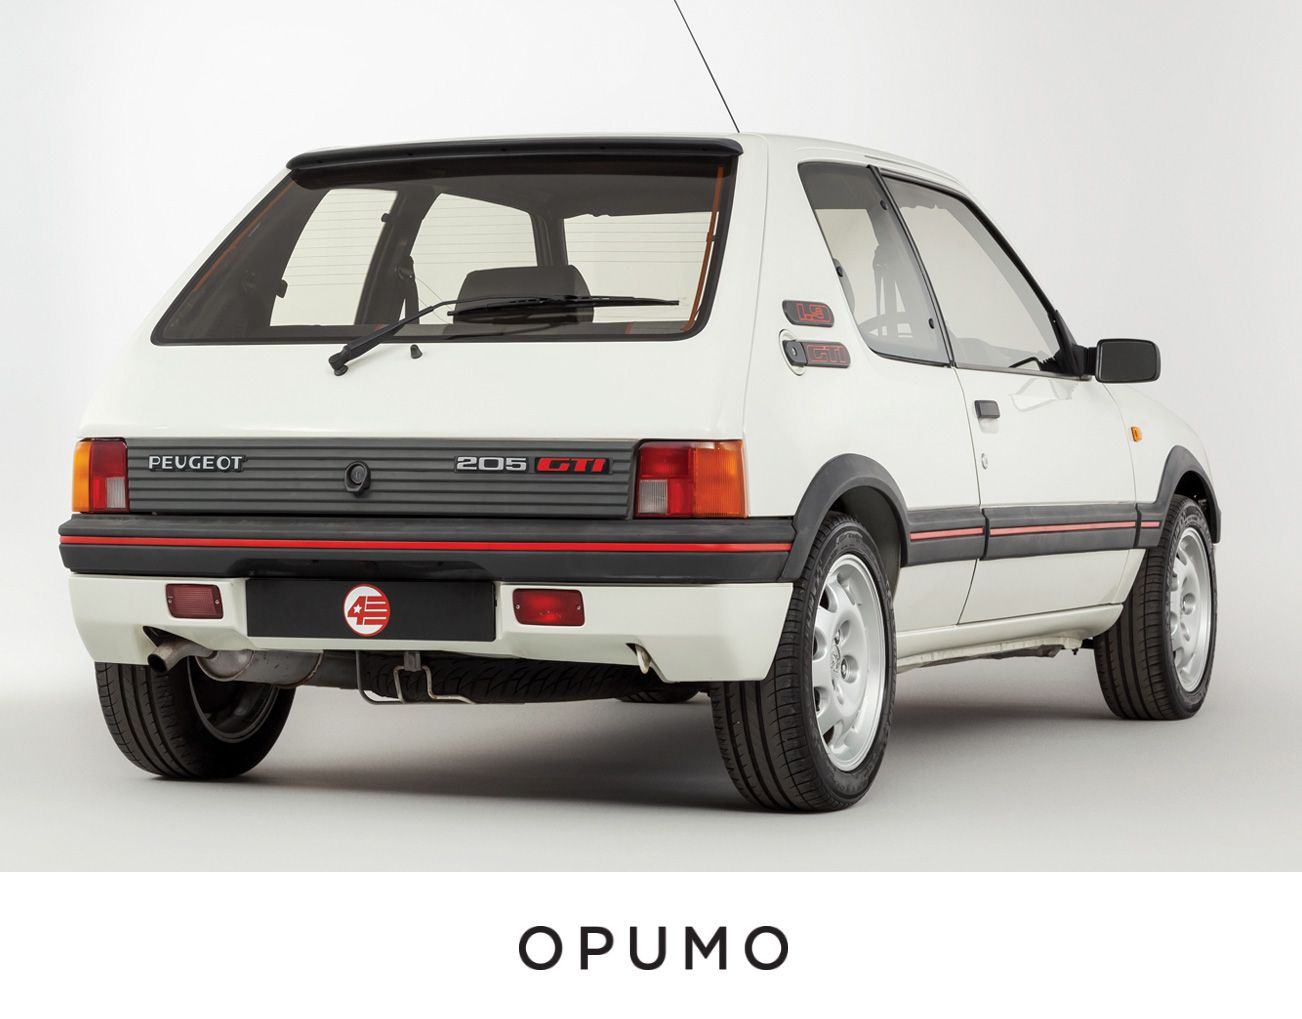 Peugeot 205 Gti 1 9 Is This The Ultimate Hot Hatch Opumo Magazine Hot Hatch Peugeot Gti